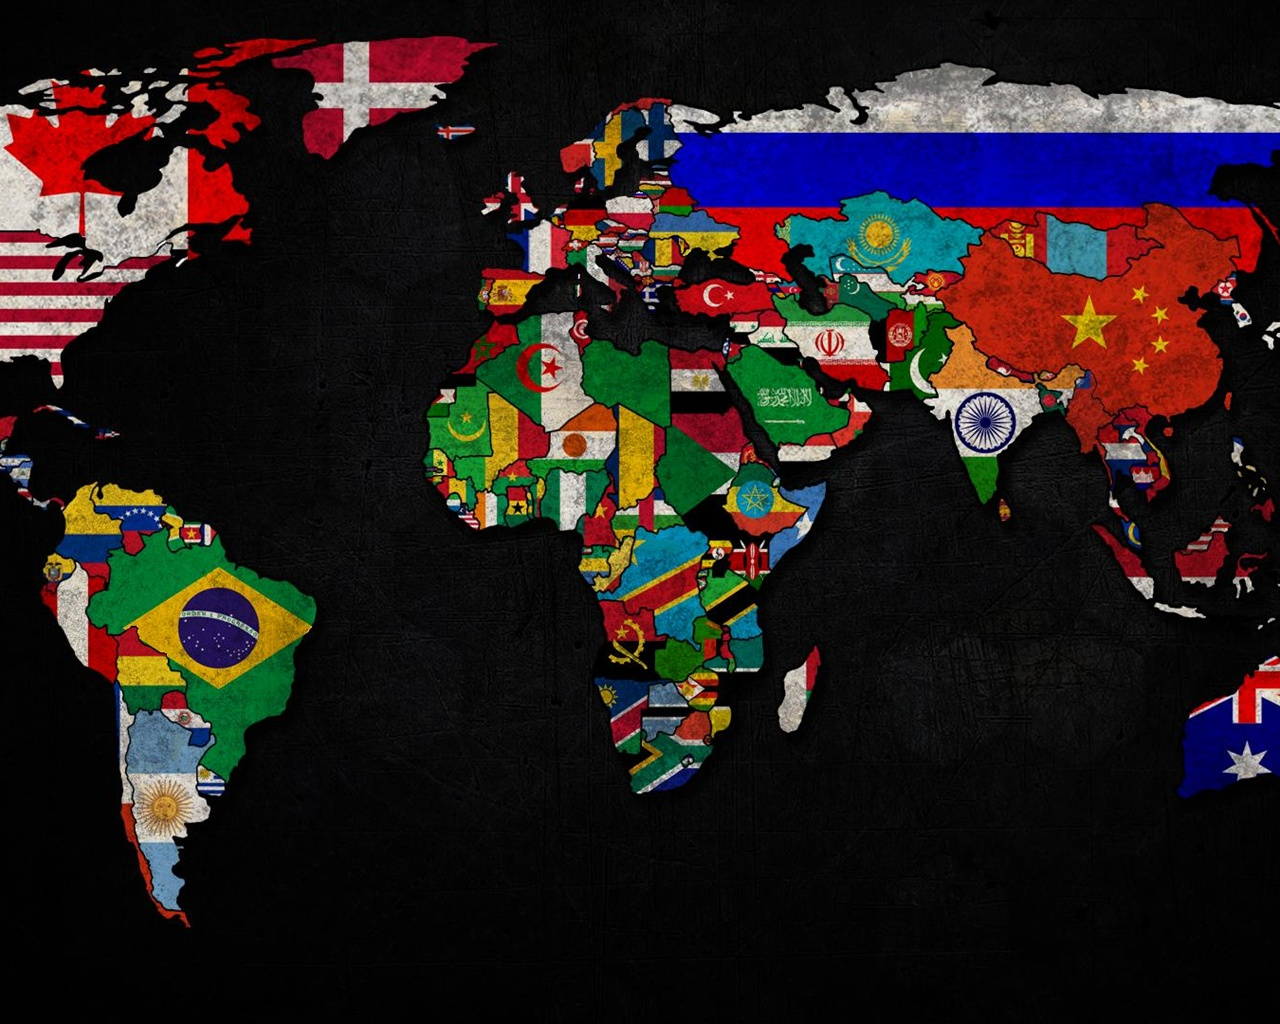 Hd Widescreen World Map Wallpaper With Flags 1339905